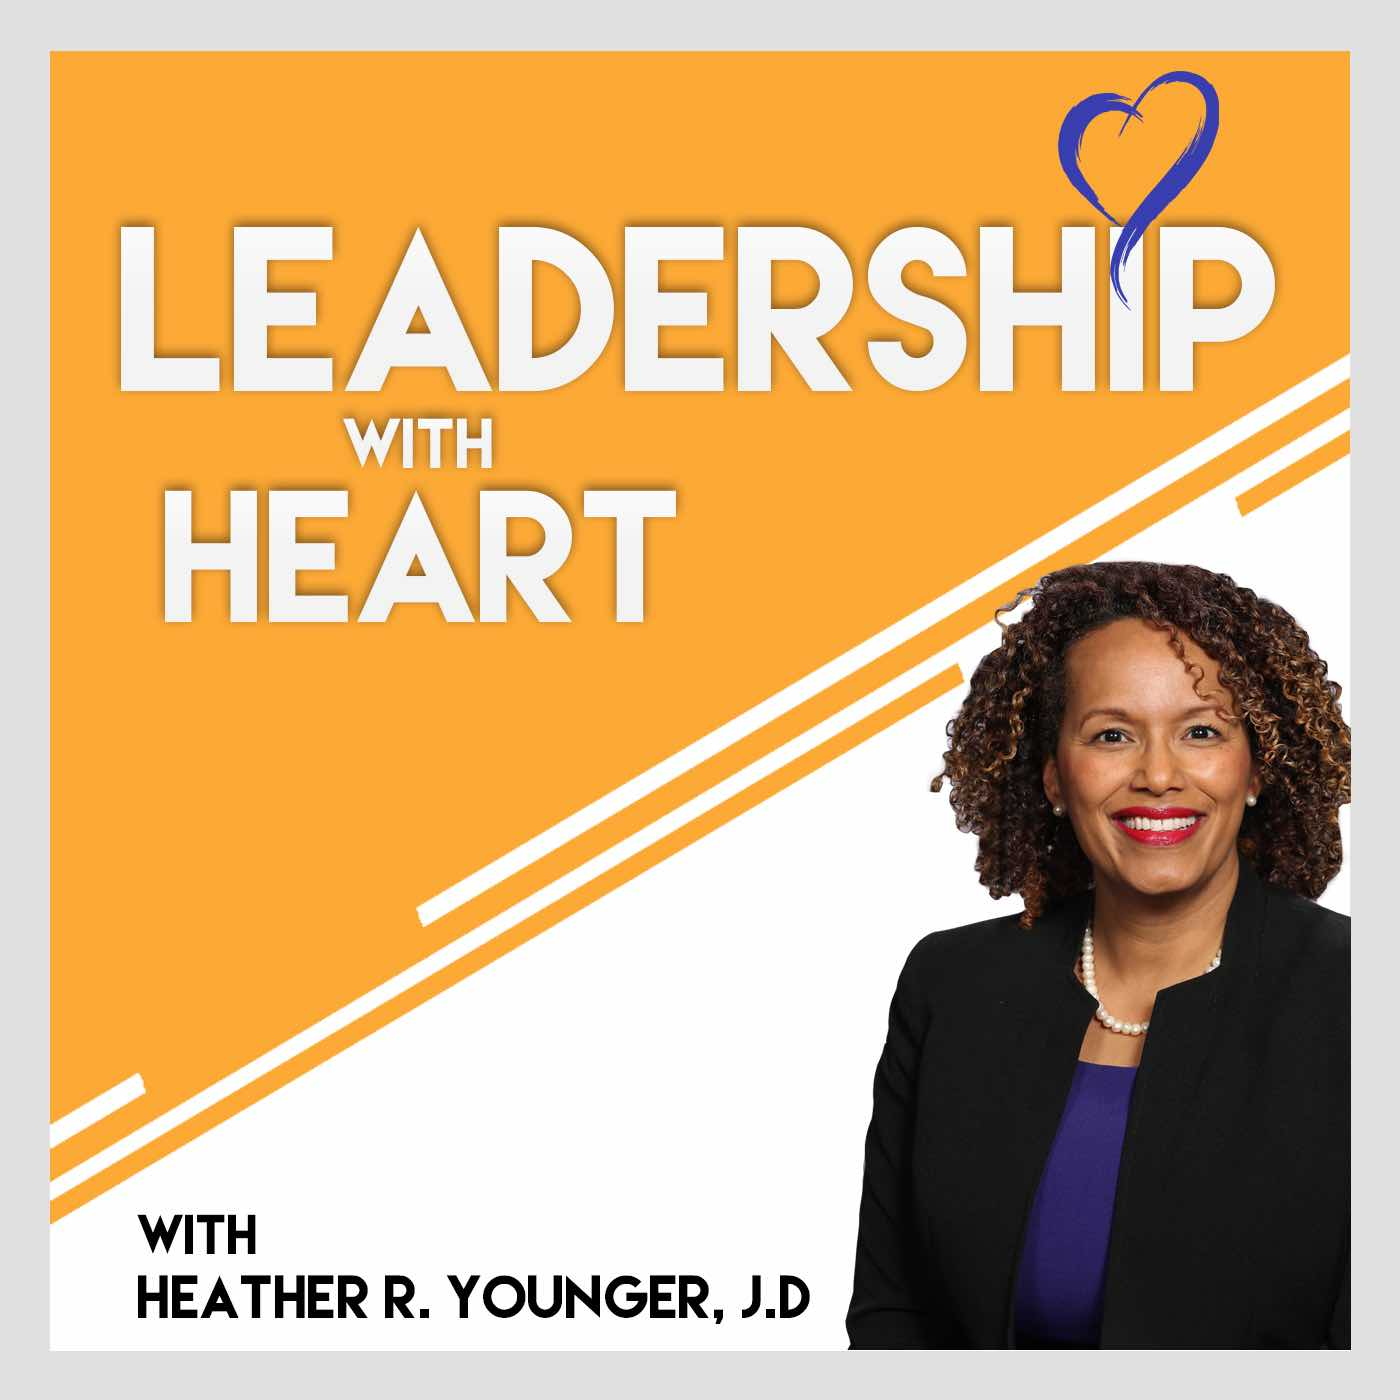 133: Leaders With Heart Provide Hope and Possibility For Those They Lead